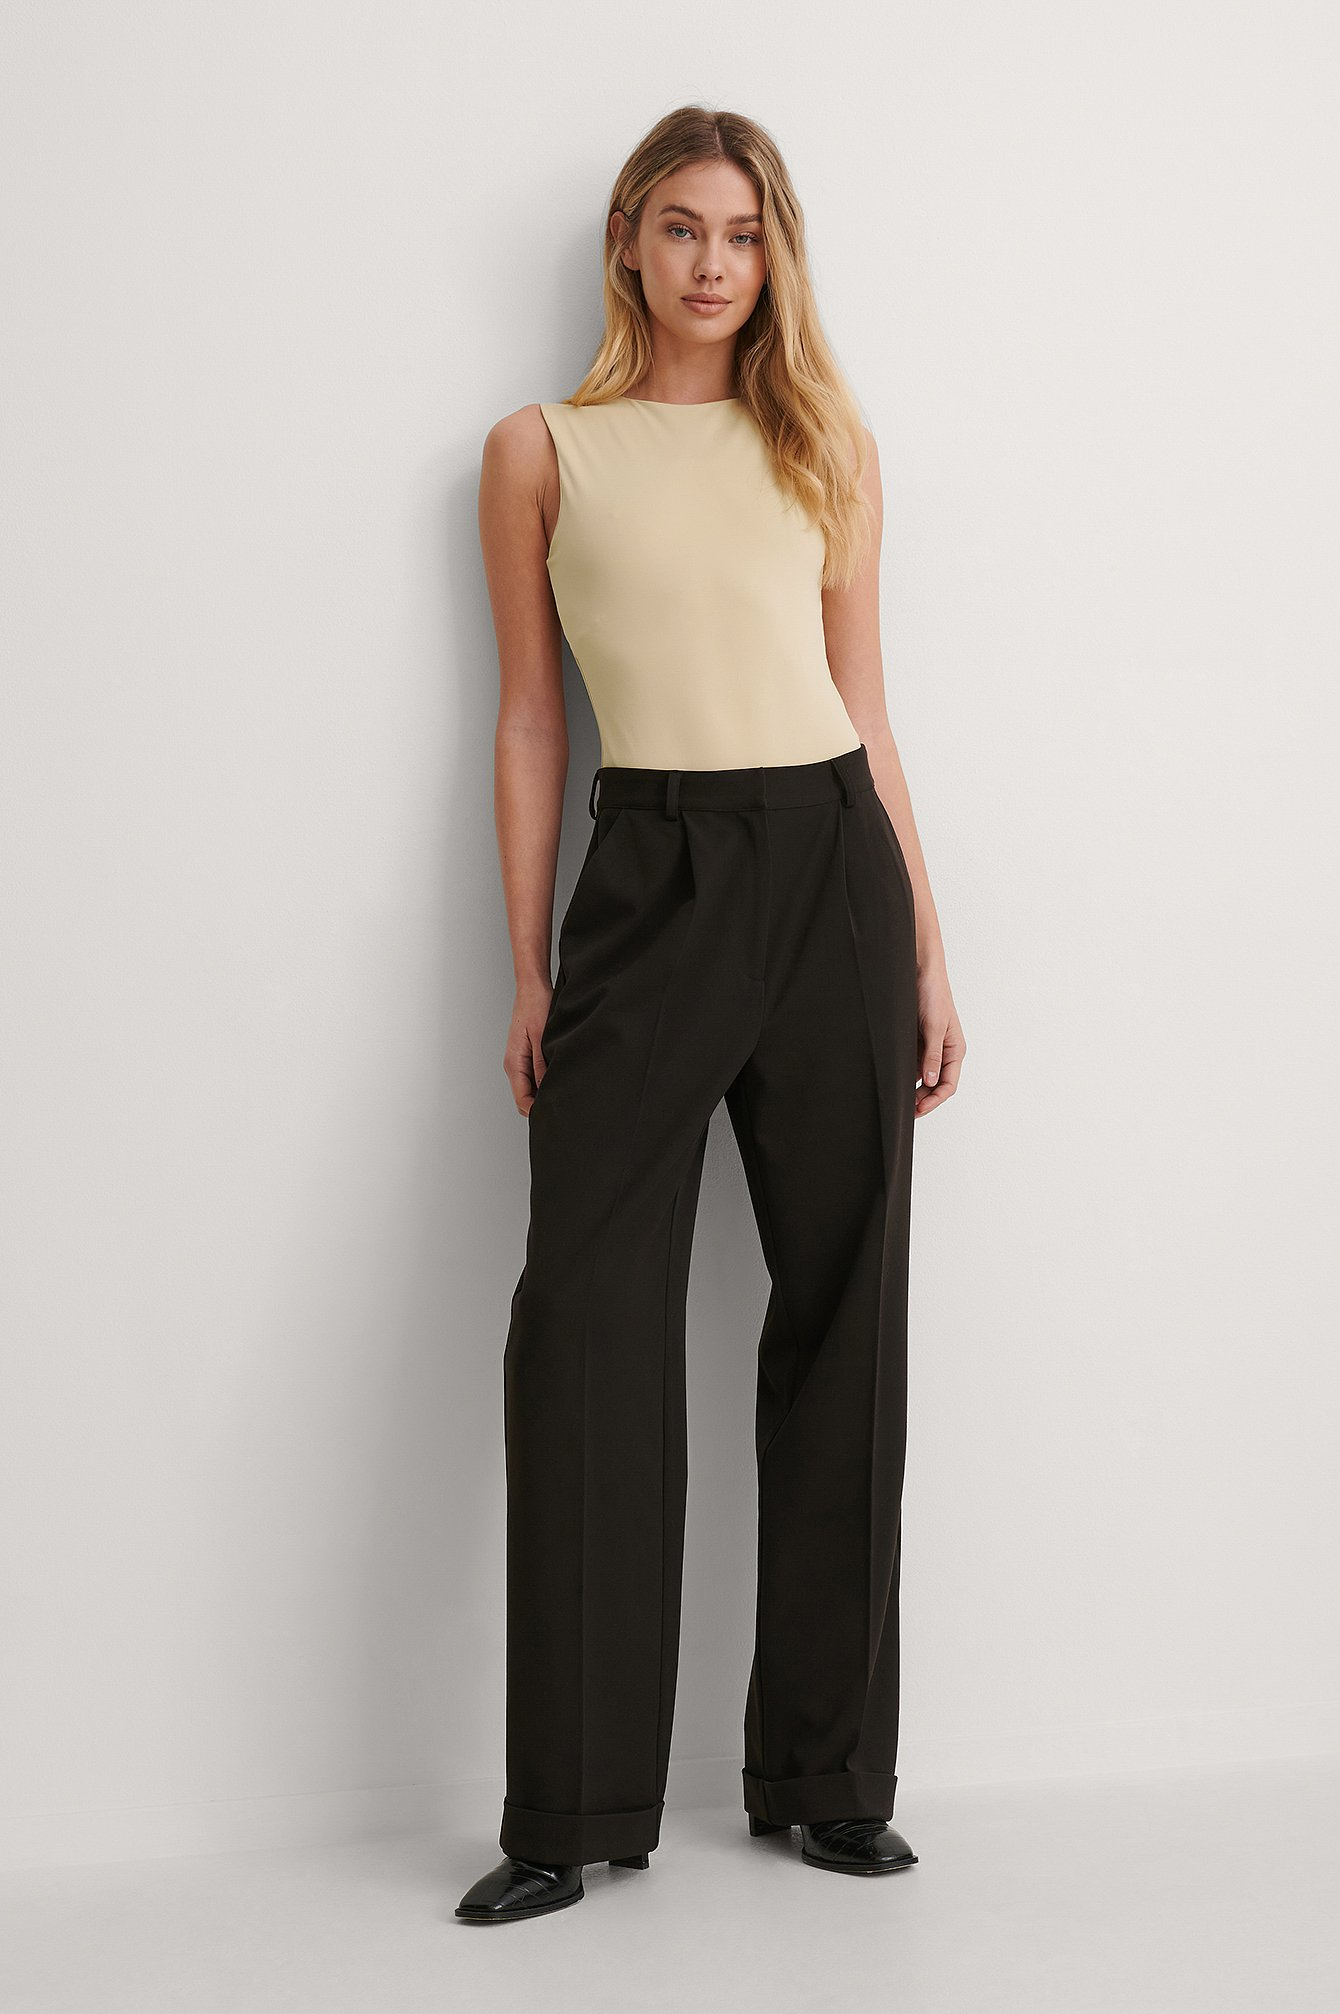 Black Pleat Suit Pants